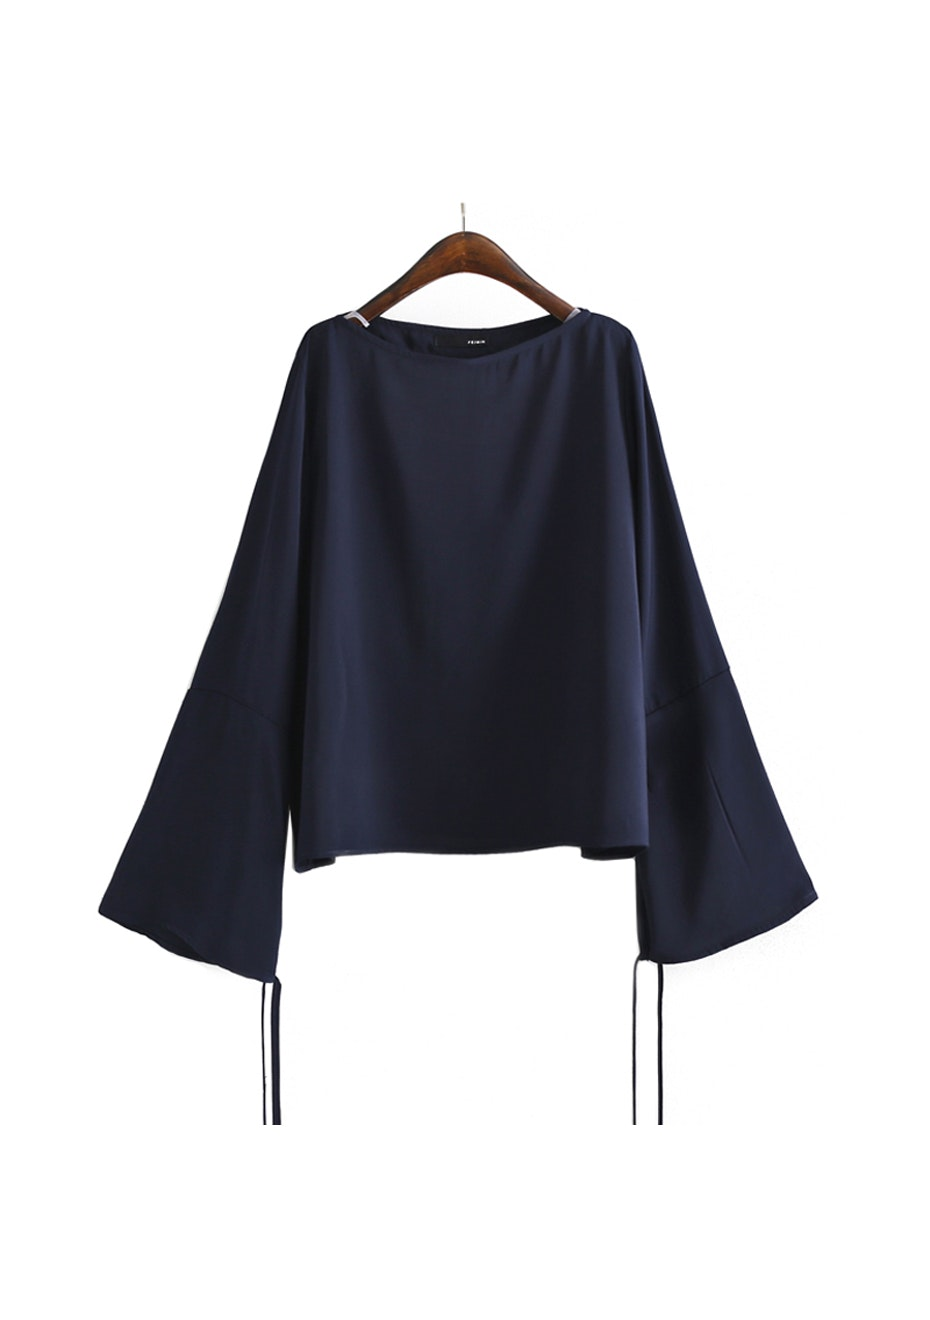 Lolita Flared Sleeve Top - Navy